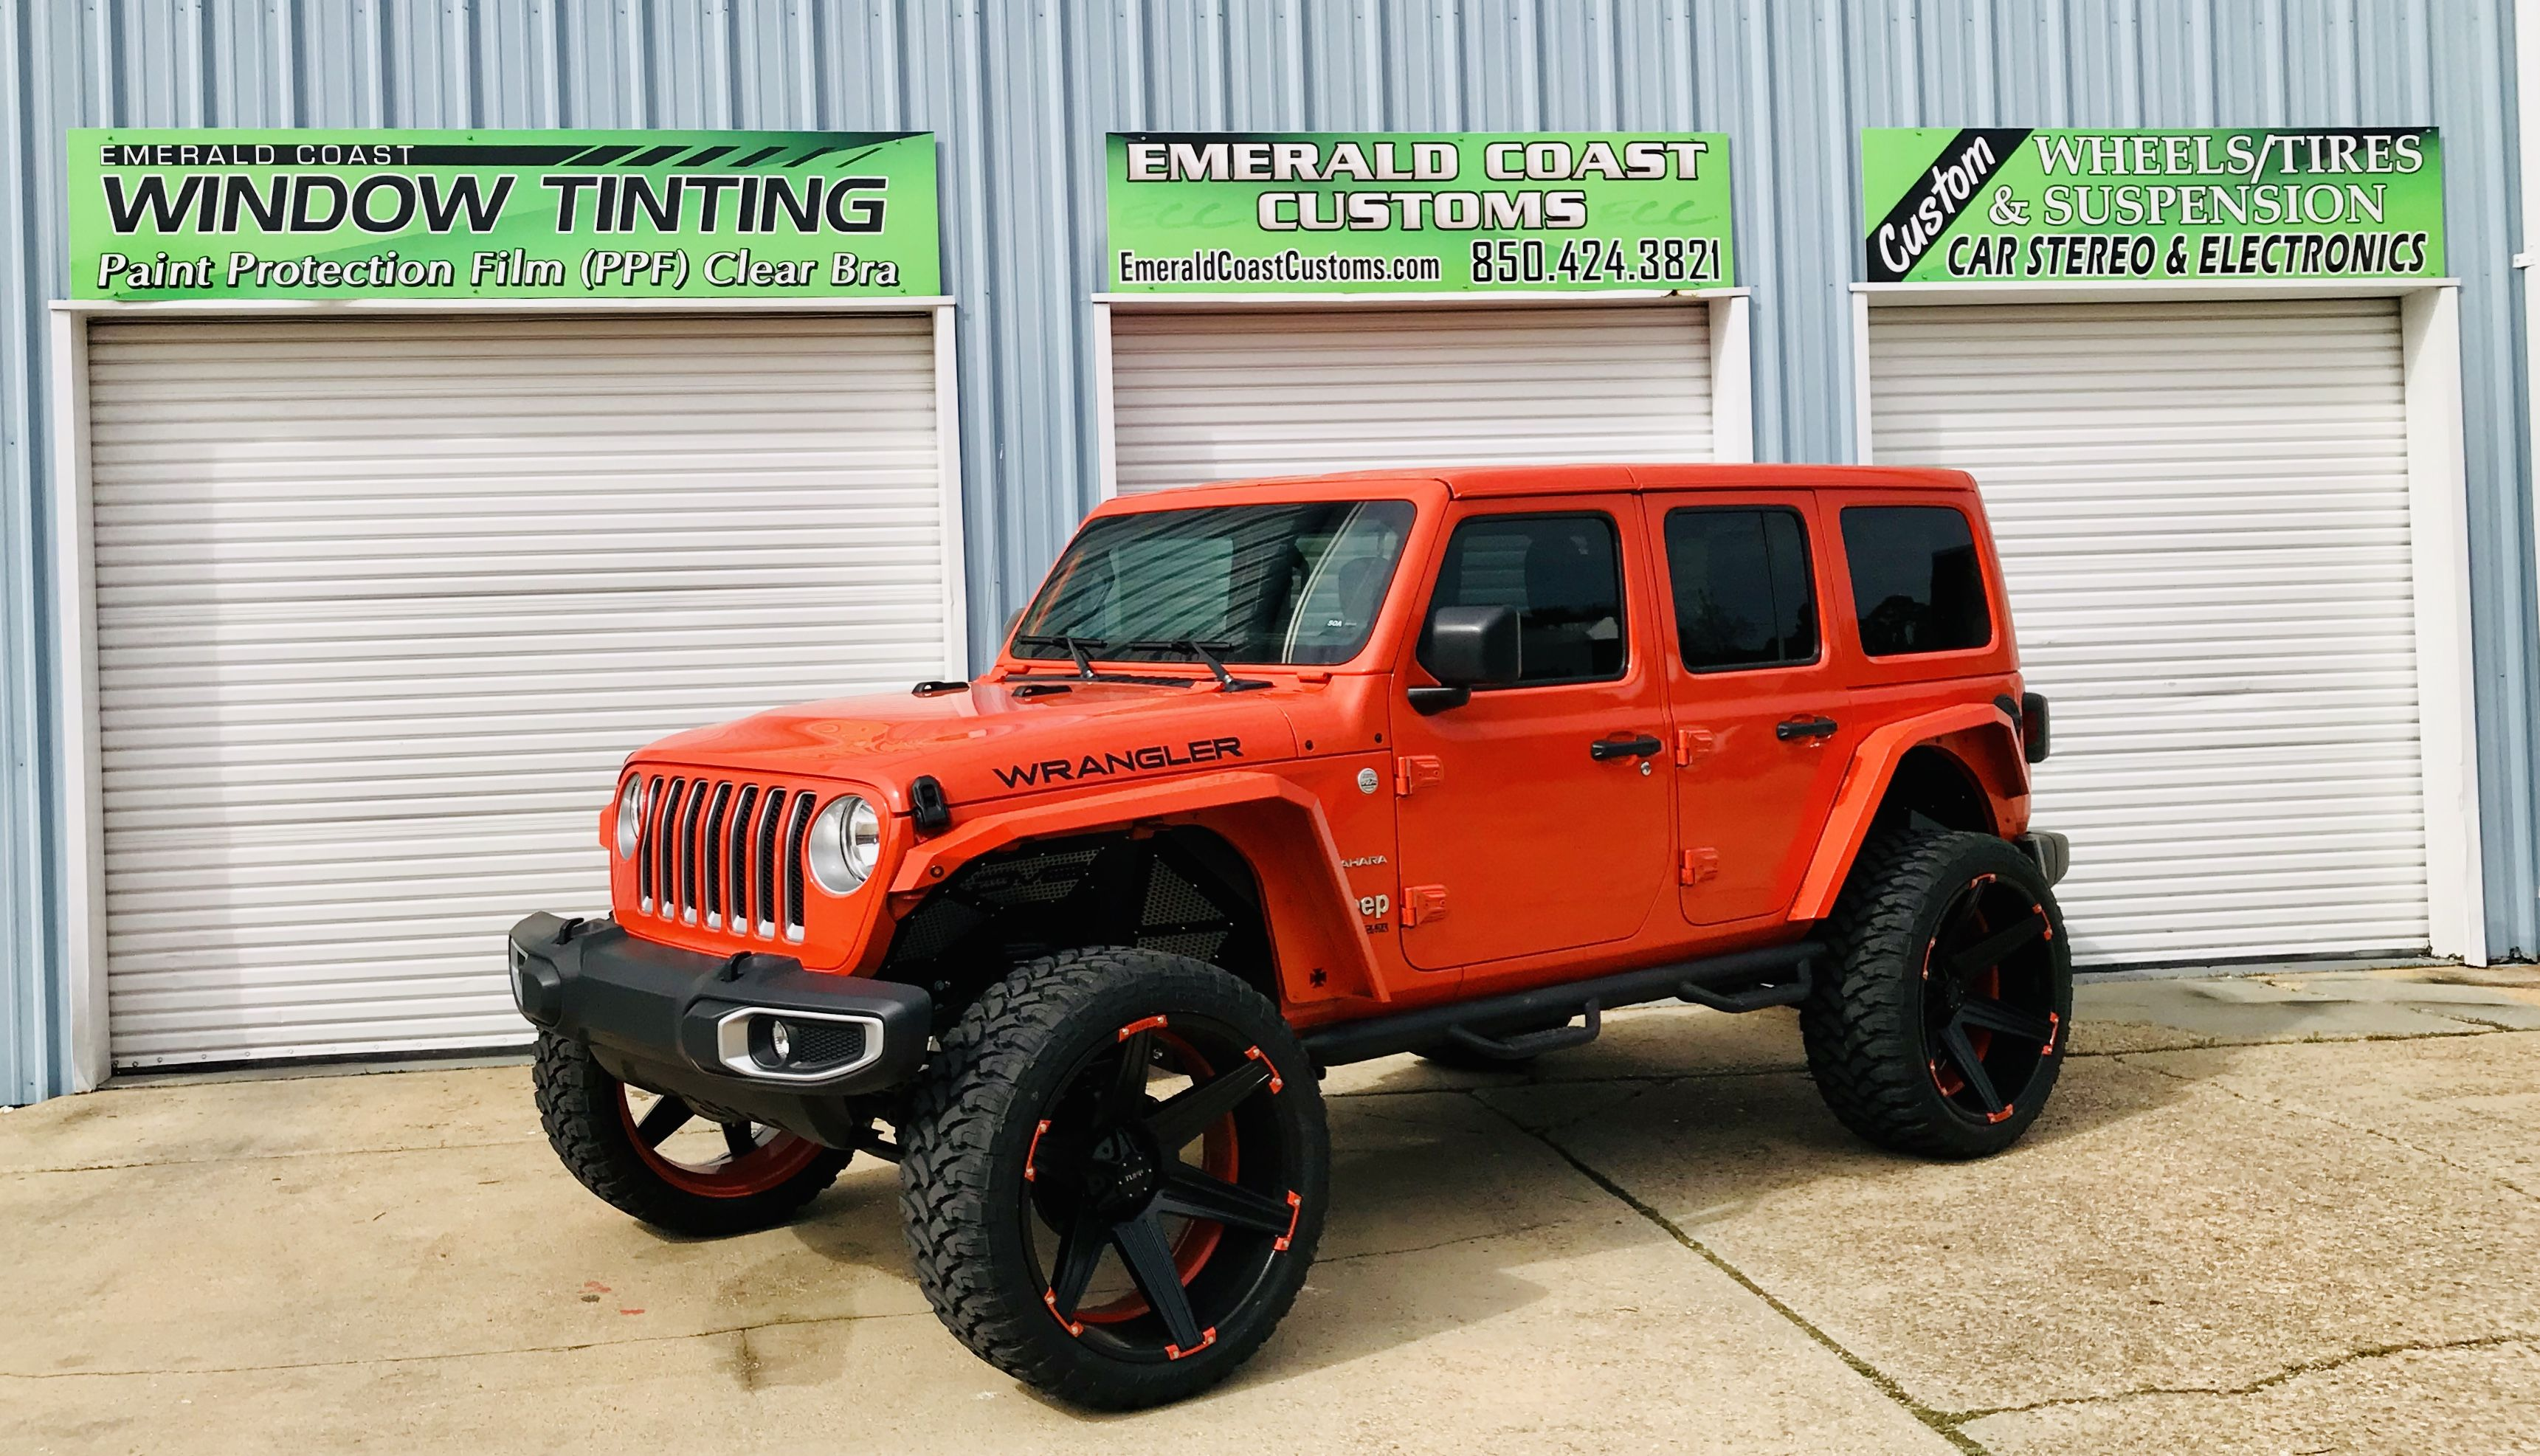 Jeep Jl Wrangler W Dv8 Inner Fenders 26 Tuff Wheels 37 Rbp Tires 4 Skyjacker Lift Kit Rubicon Express Geometry Kit Sunte Jeep Jl Jeep Tinted Windows